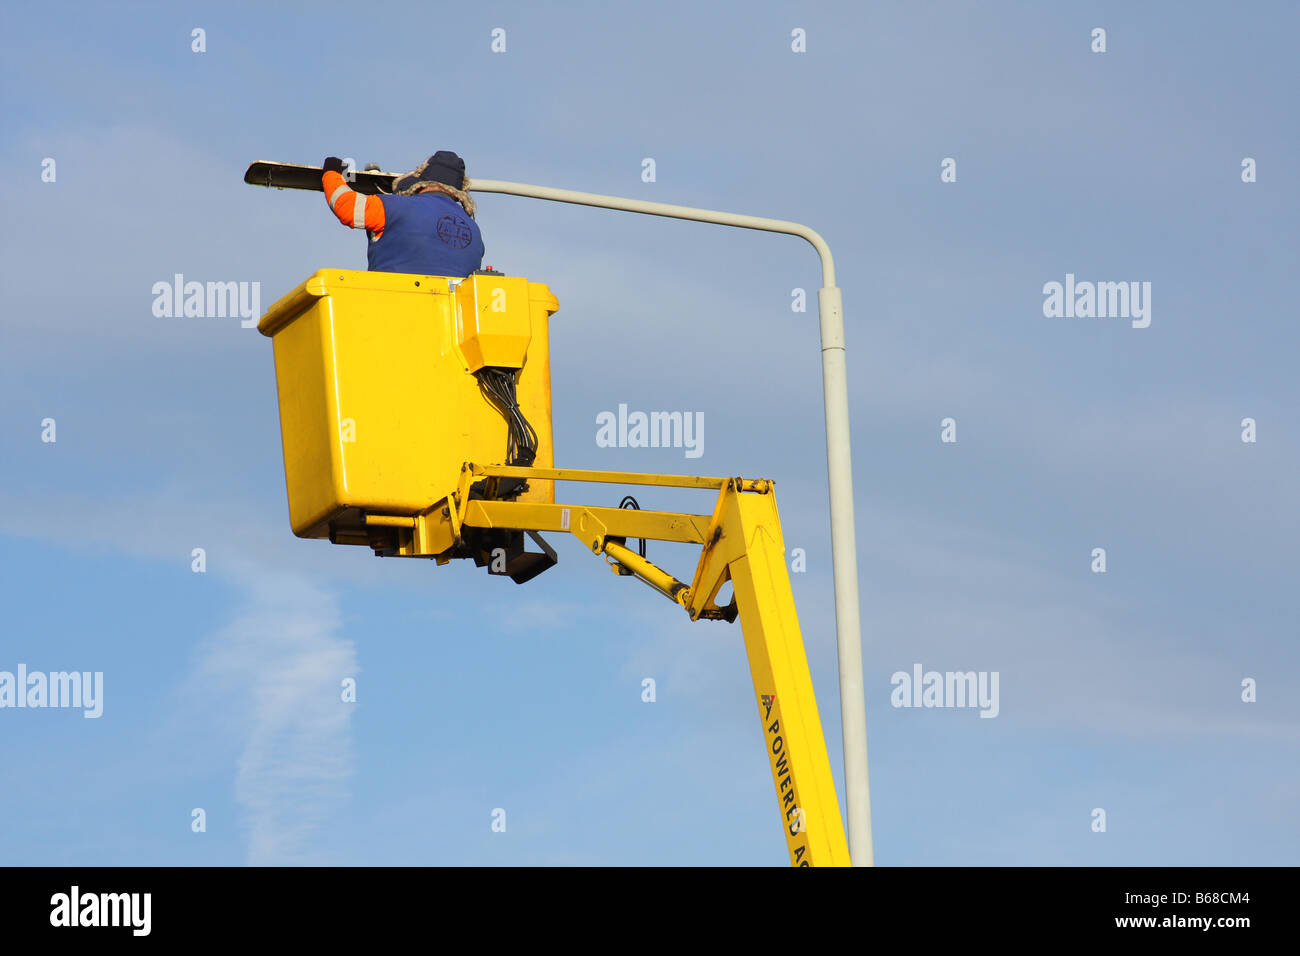 Street lighting maintenance work in a U.K. city. - Stock Image